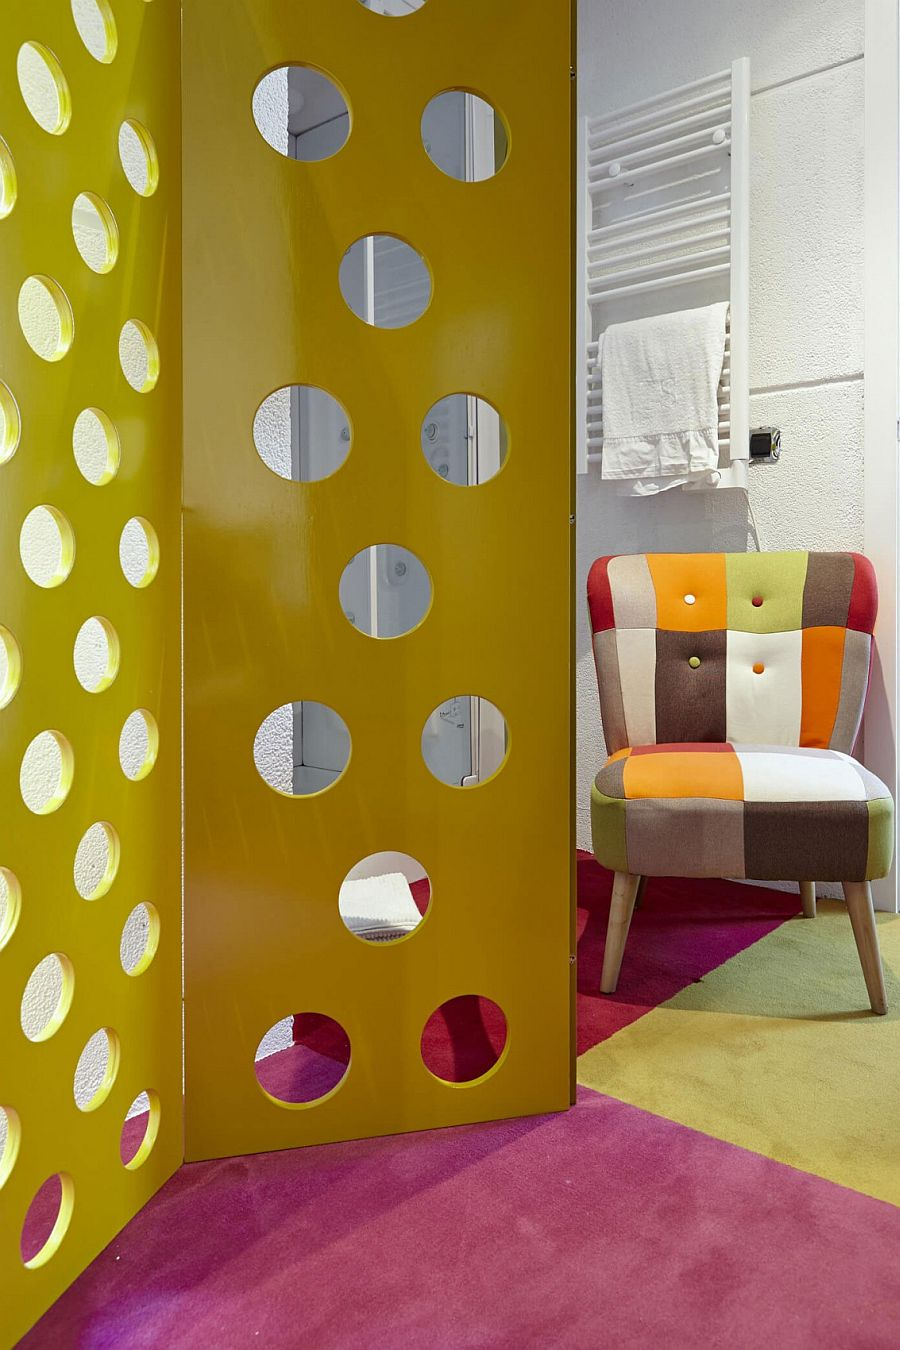 Colorful chair and partition for the eclectic interior